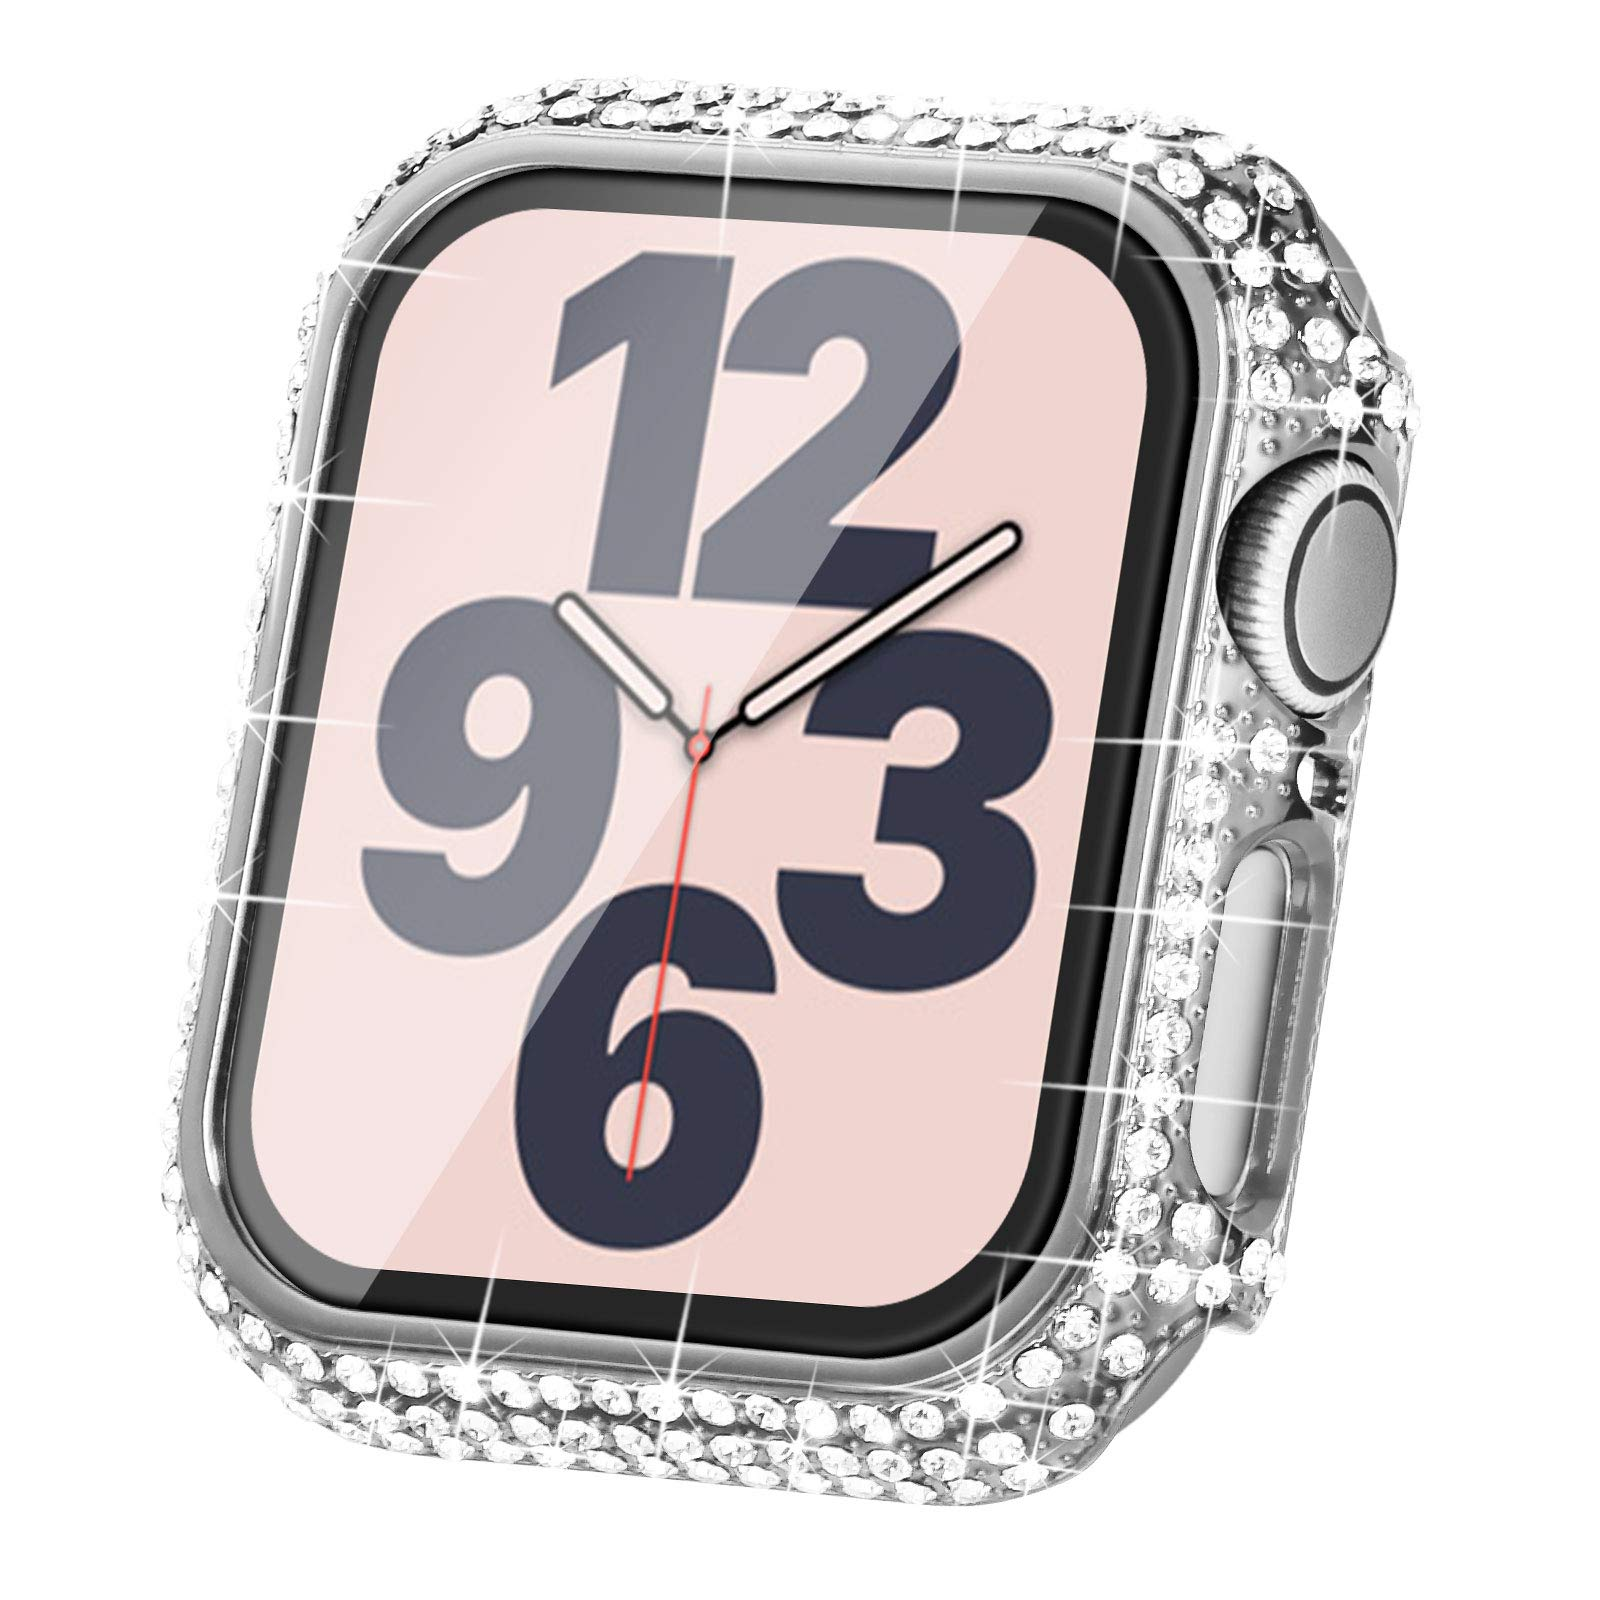 Surace Compatible with Apple Watch Case 40mm for Apple Watch Series 6/5/4/3/2/1, Bling Cases with Over 200 Crystal Diamond Protective Cover Bumper for 38mm 40mm 42mm 44mm, Silver